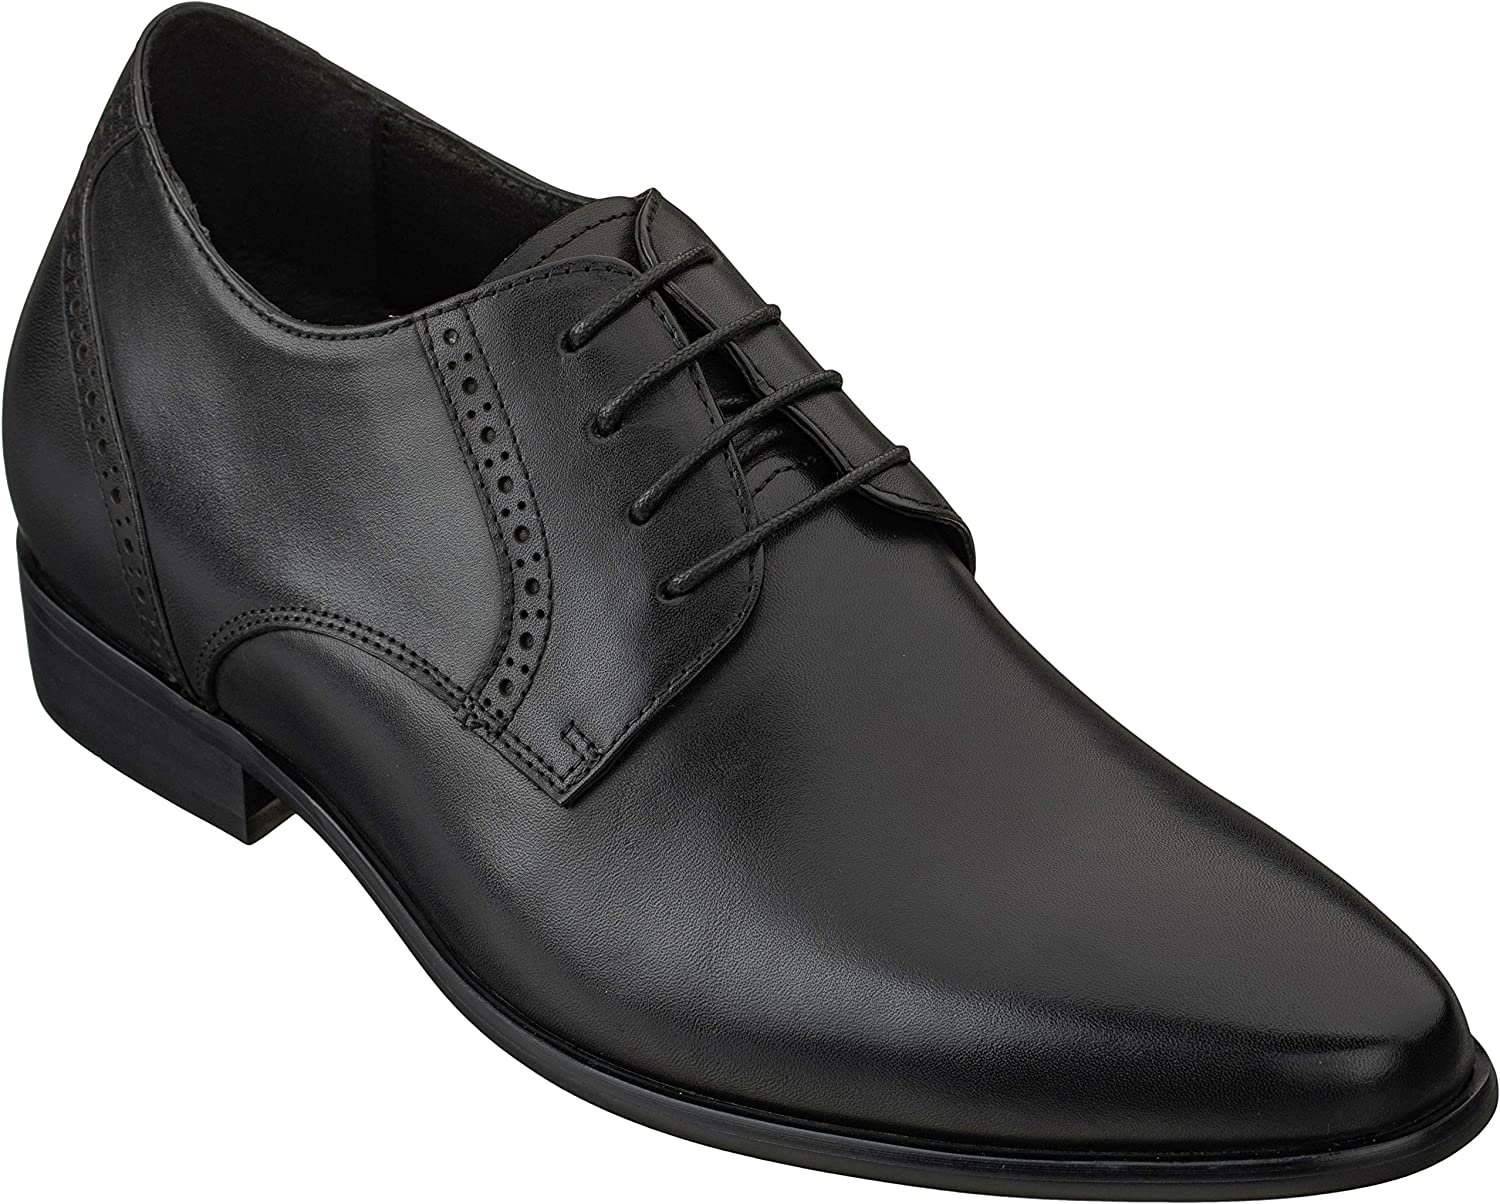 CALTO Men's Invisible Height Increasing Elevator Shoes - Premium Leather Lace-up Formal Oxfords with Faux Leather Sole - 2.8 Inches Taller